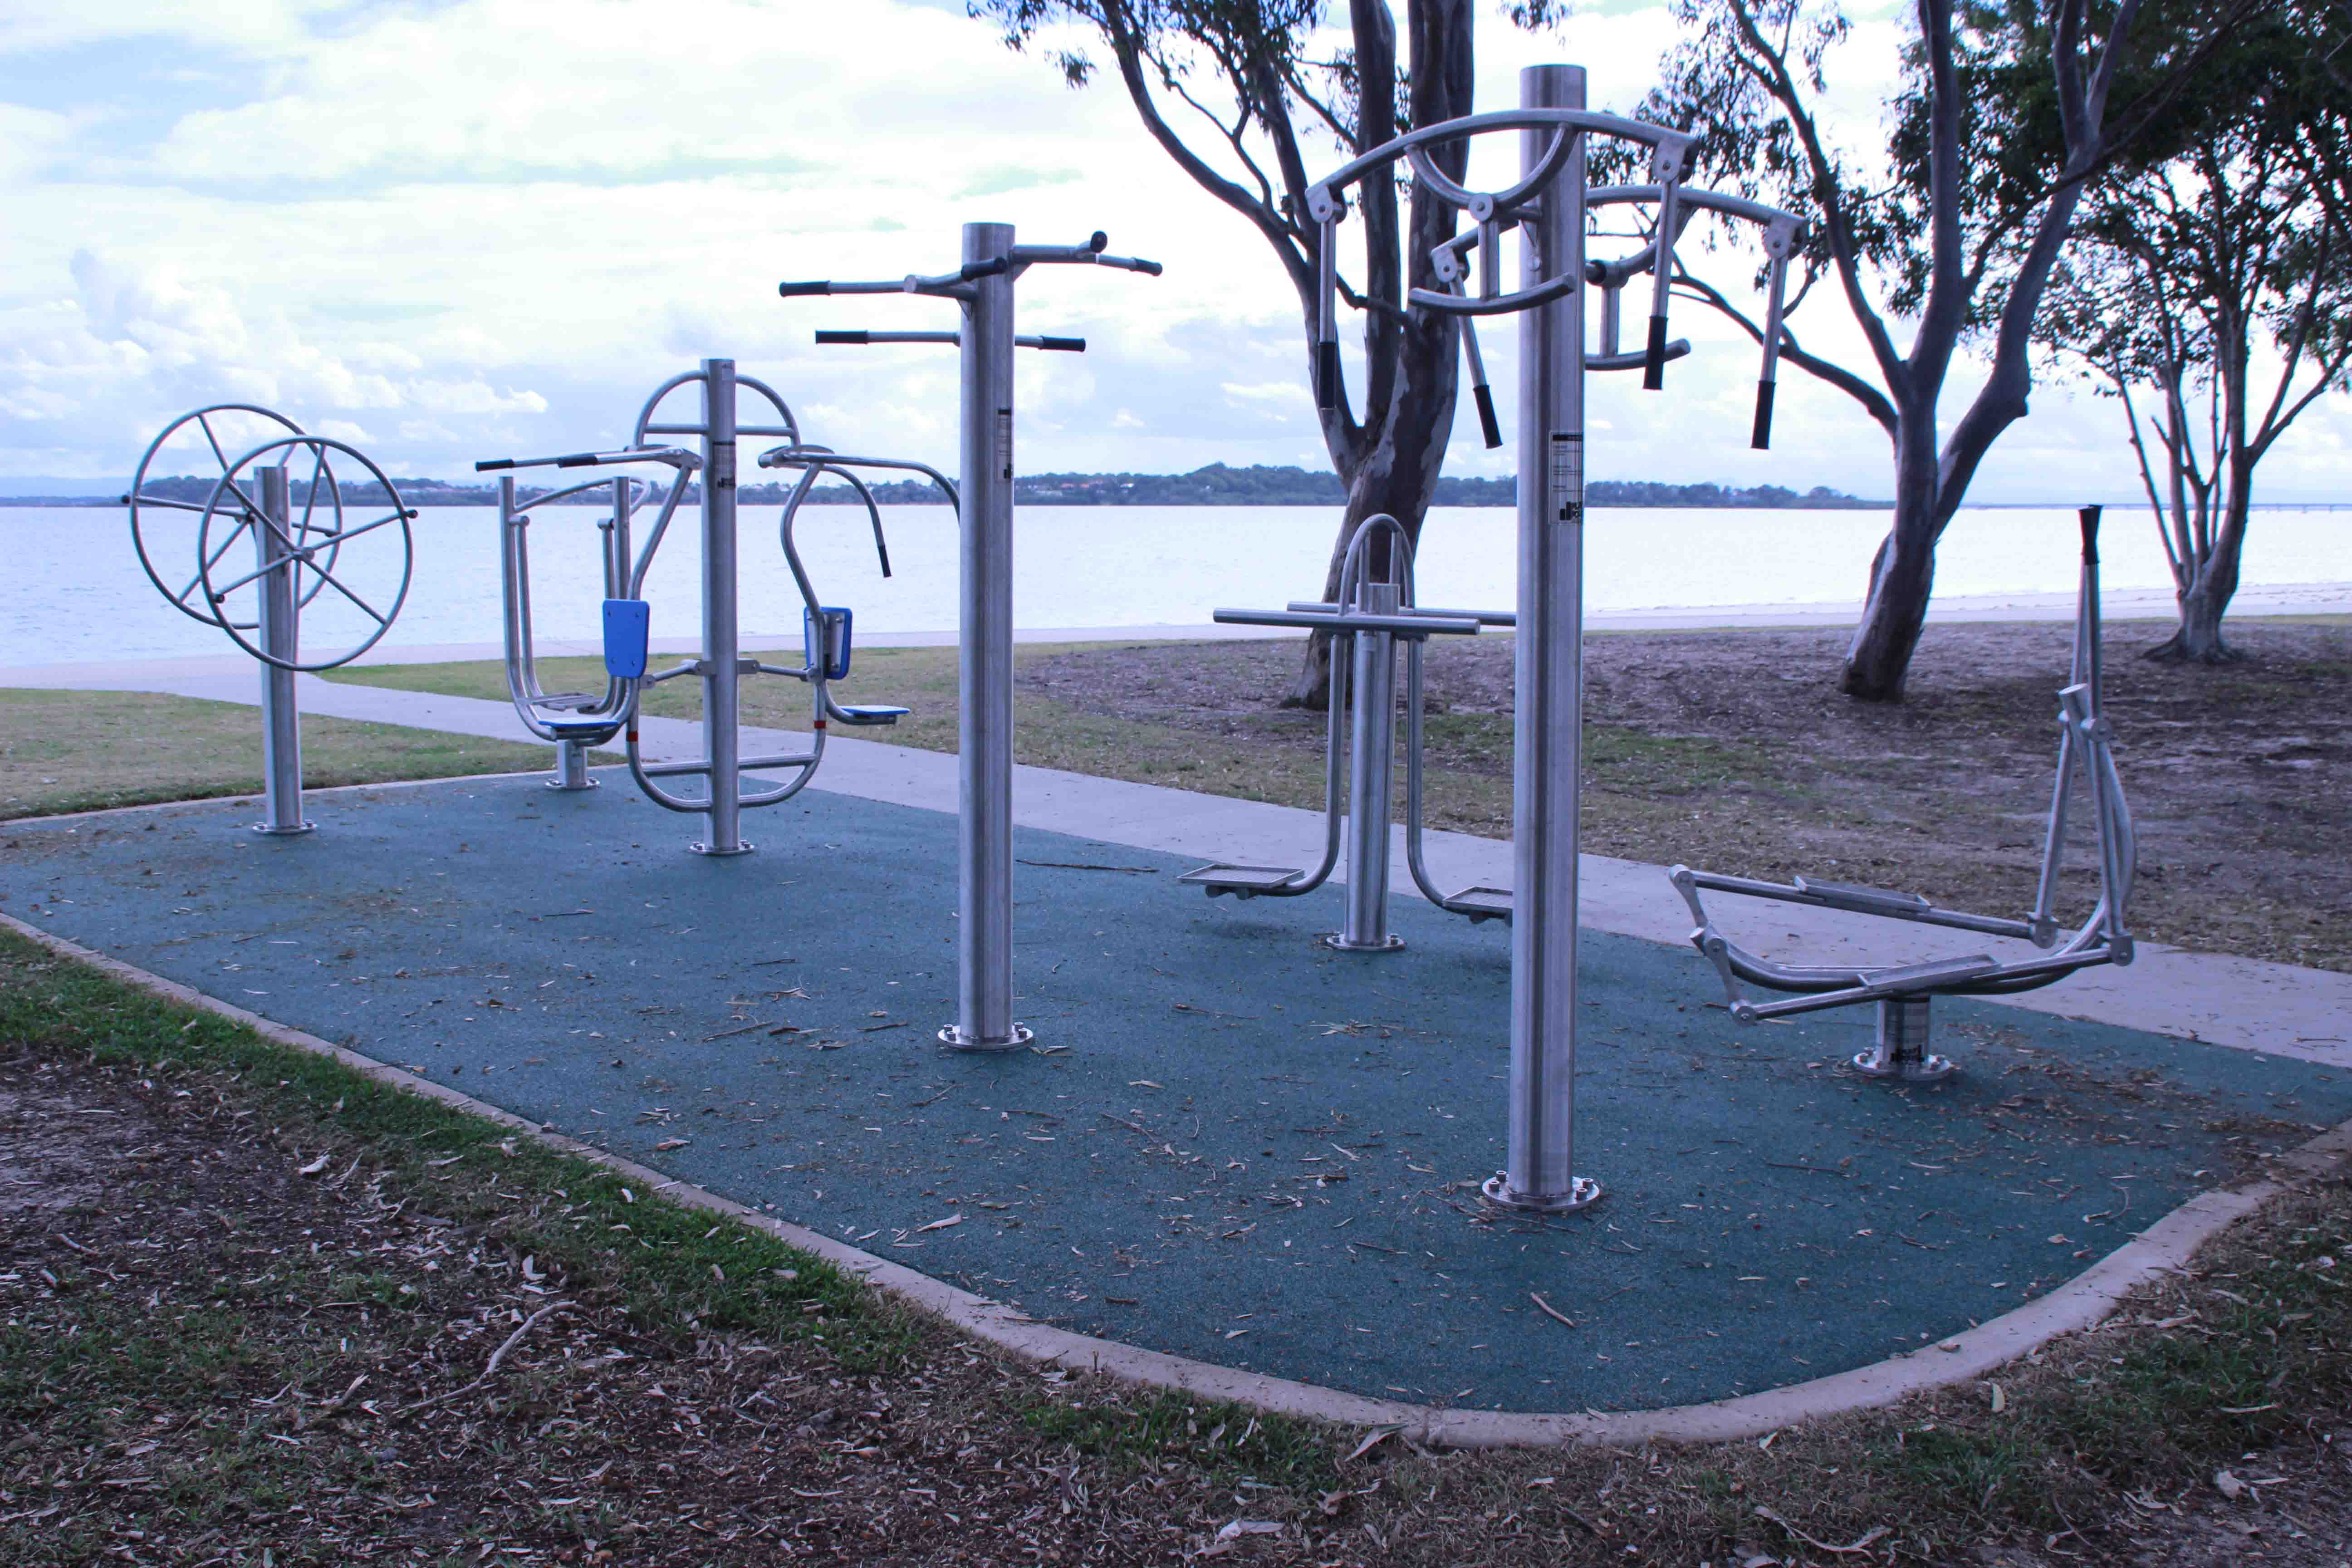 What kind of planning do you need to do before installing outdoor fitness equipment?